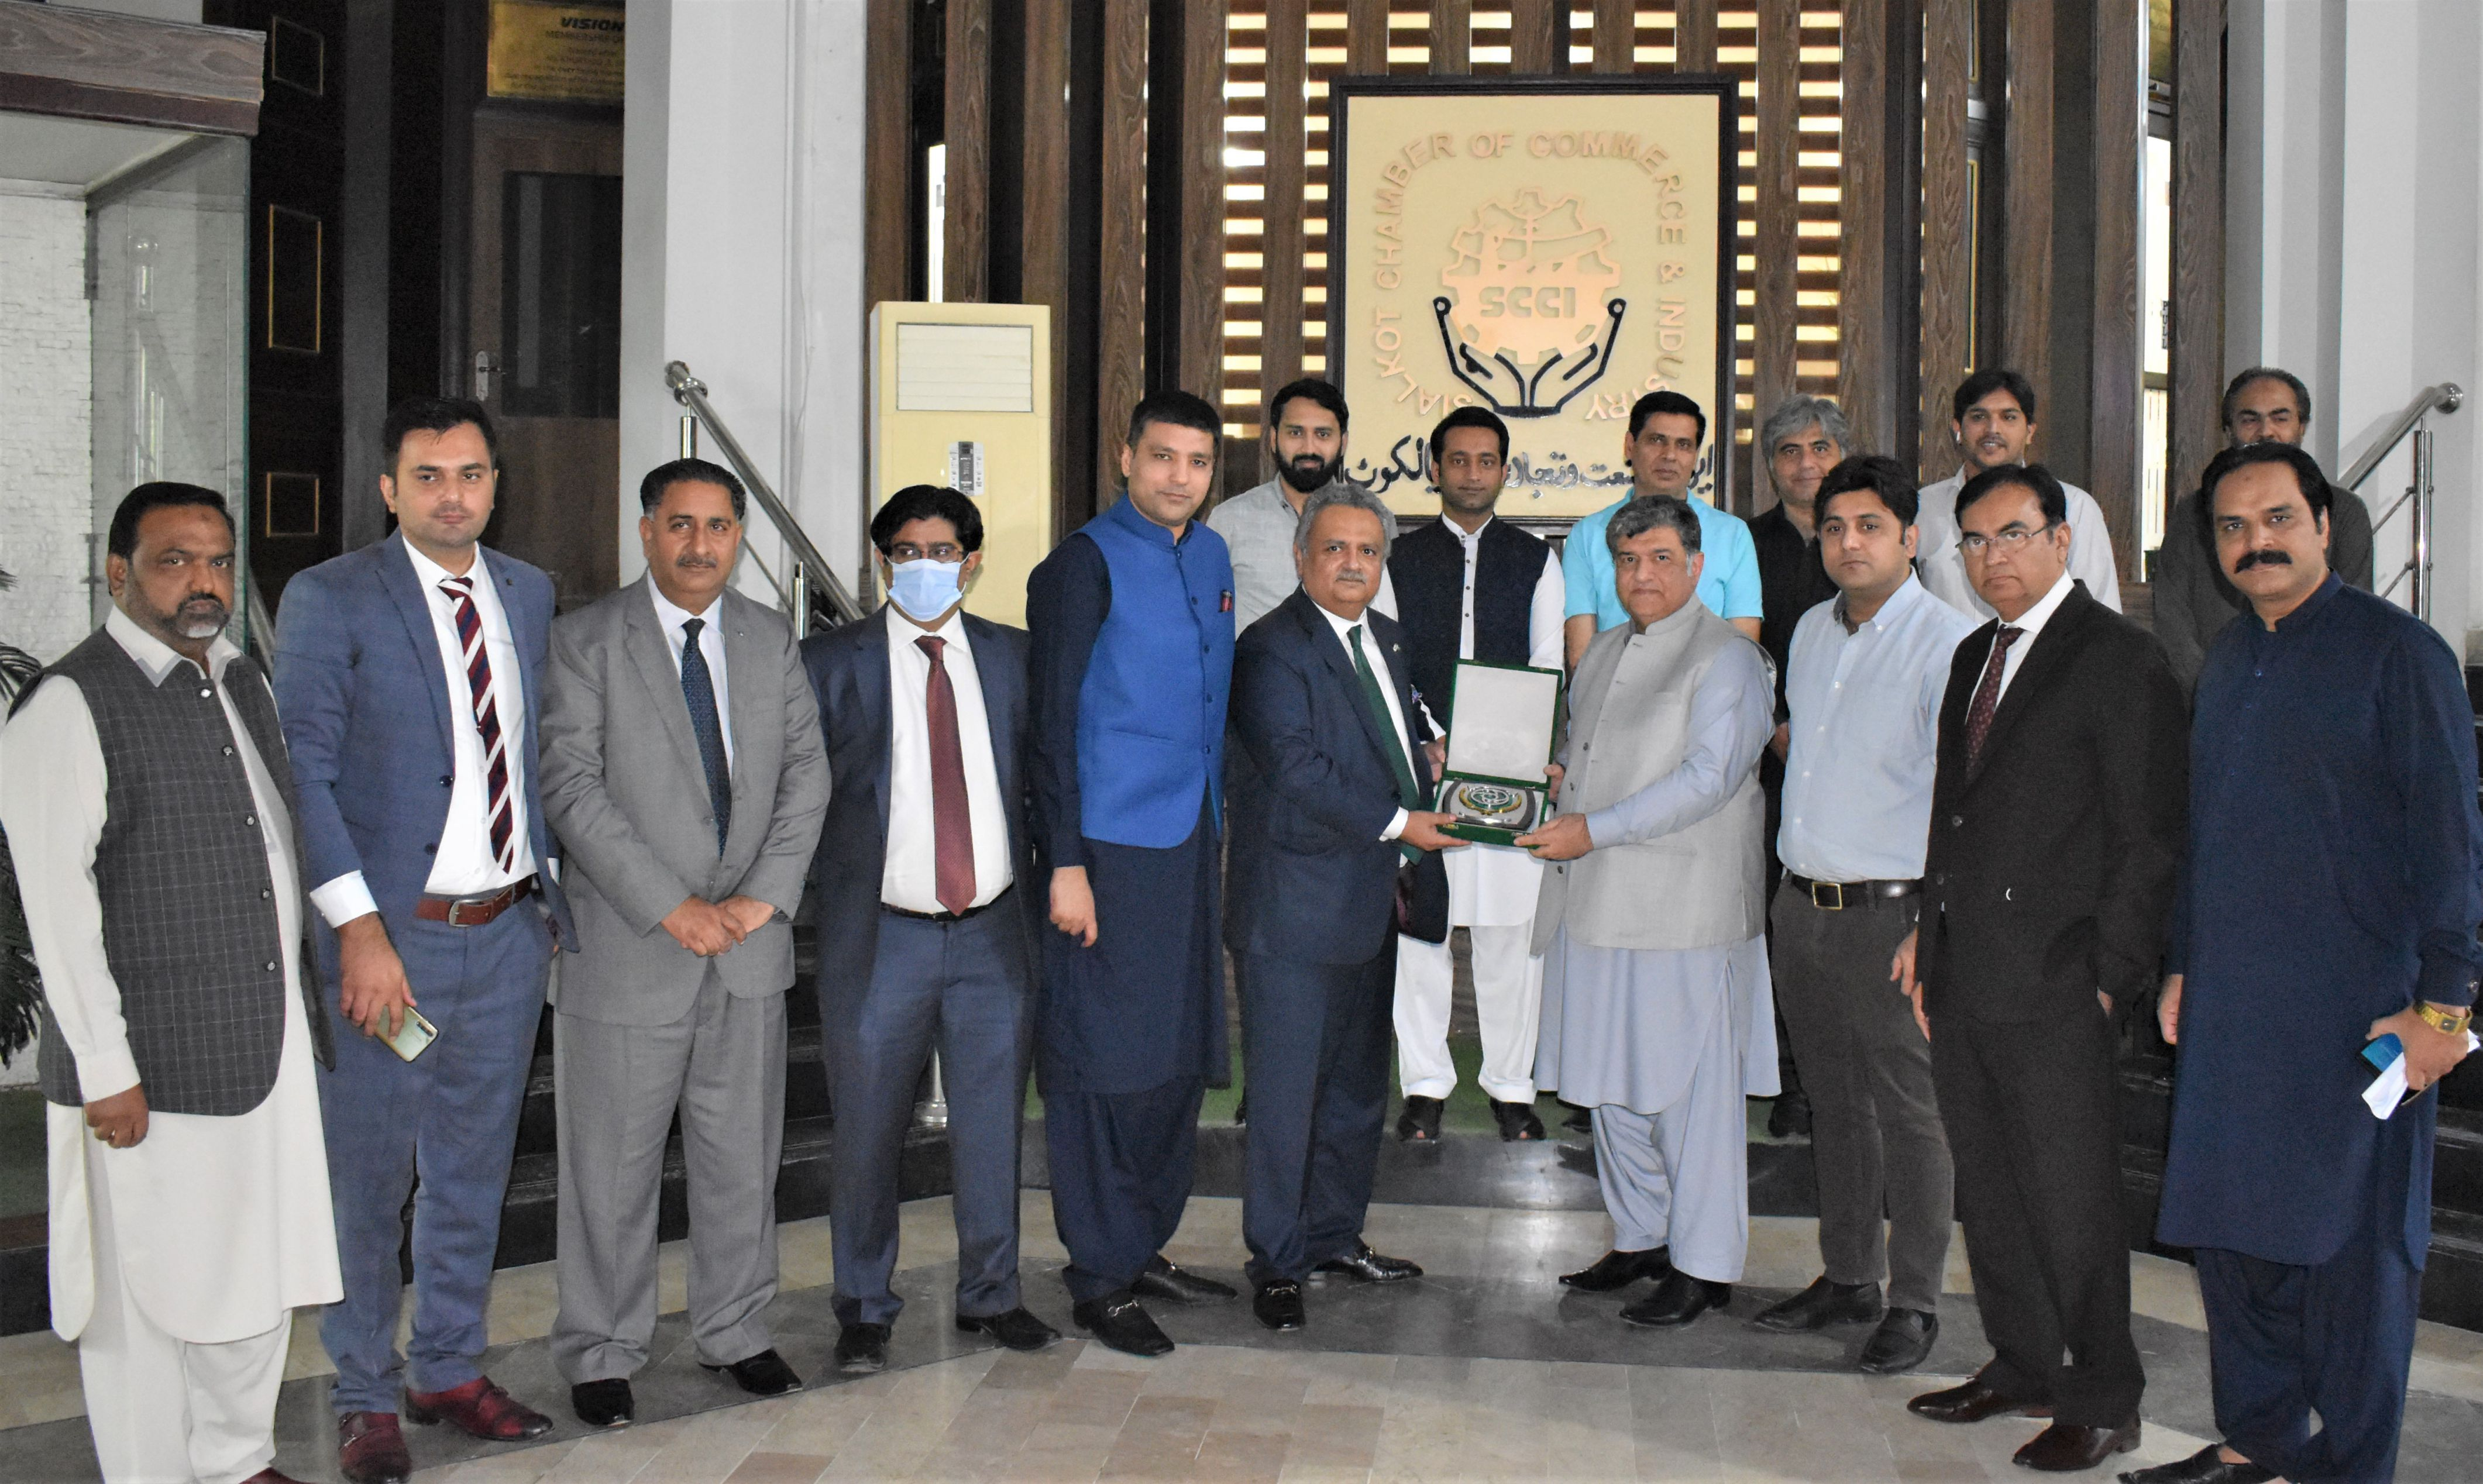 On October 14, 2021, A delegation of the National Bank of Pakistan led by Mr. Rehmat Ali Hasnie, Group Chief, Inclusive Development Group (NBP) visited The Sialkot Chamber of Commerce & Industry. The delegates had a meeting with the President, Senior Vice President, Vice President and business community of Sialkot to explore all potential areas of mutual cooperation and to build up close liaison between NBP and Business Community of Sialkot.